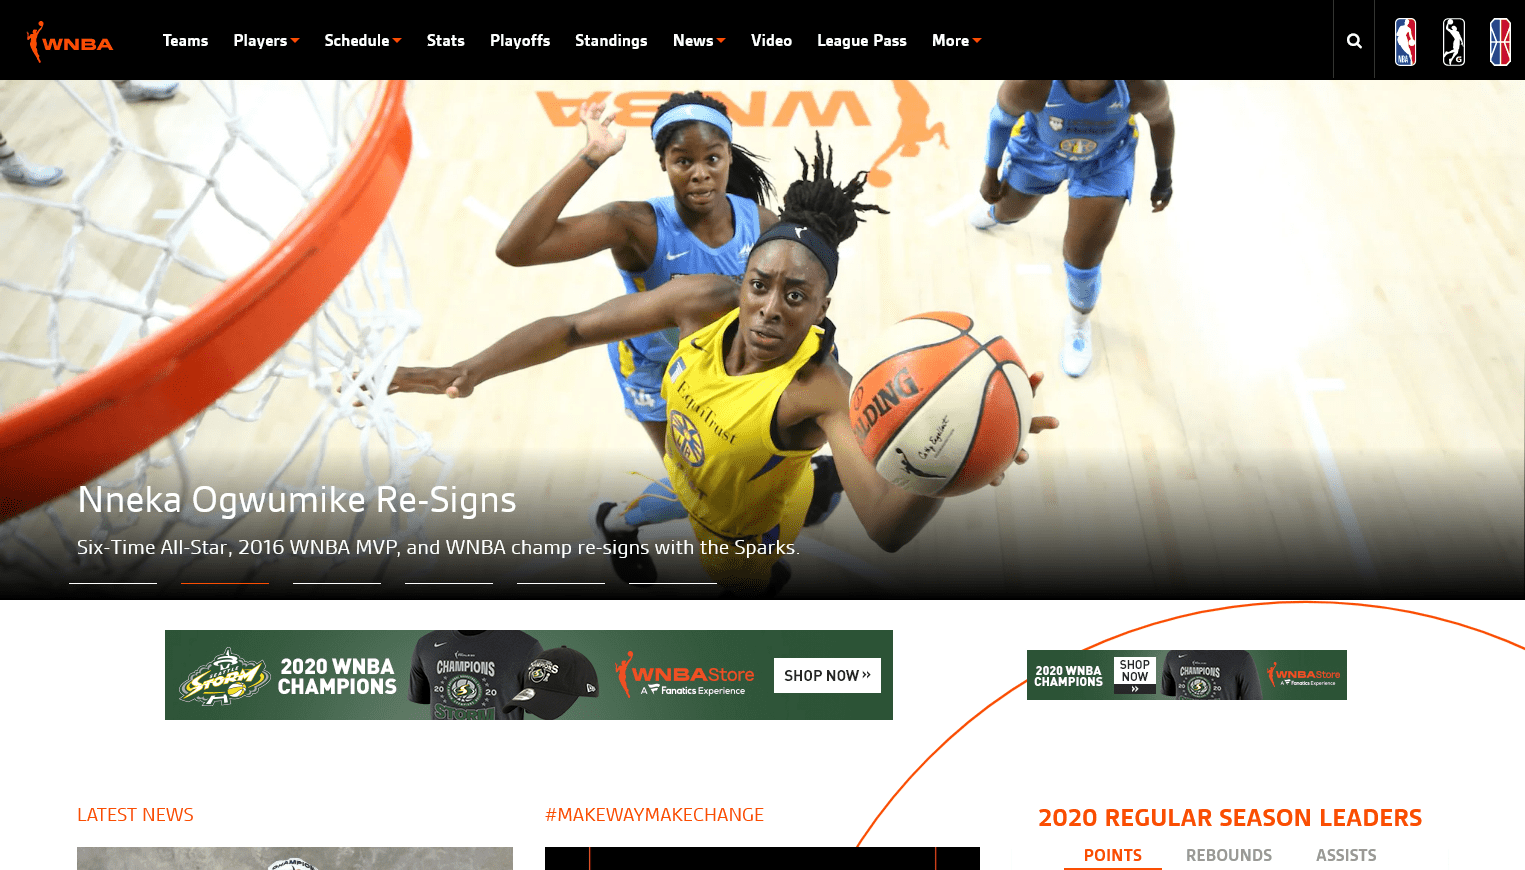 Women's National Basketball Association (WNBA)